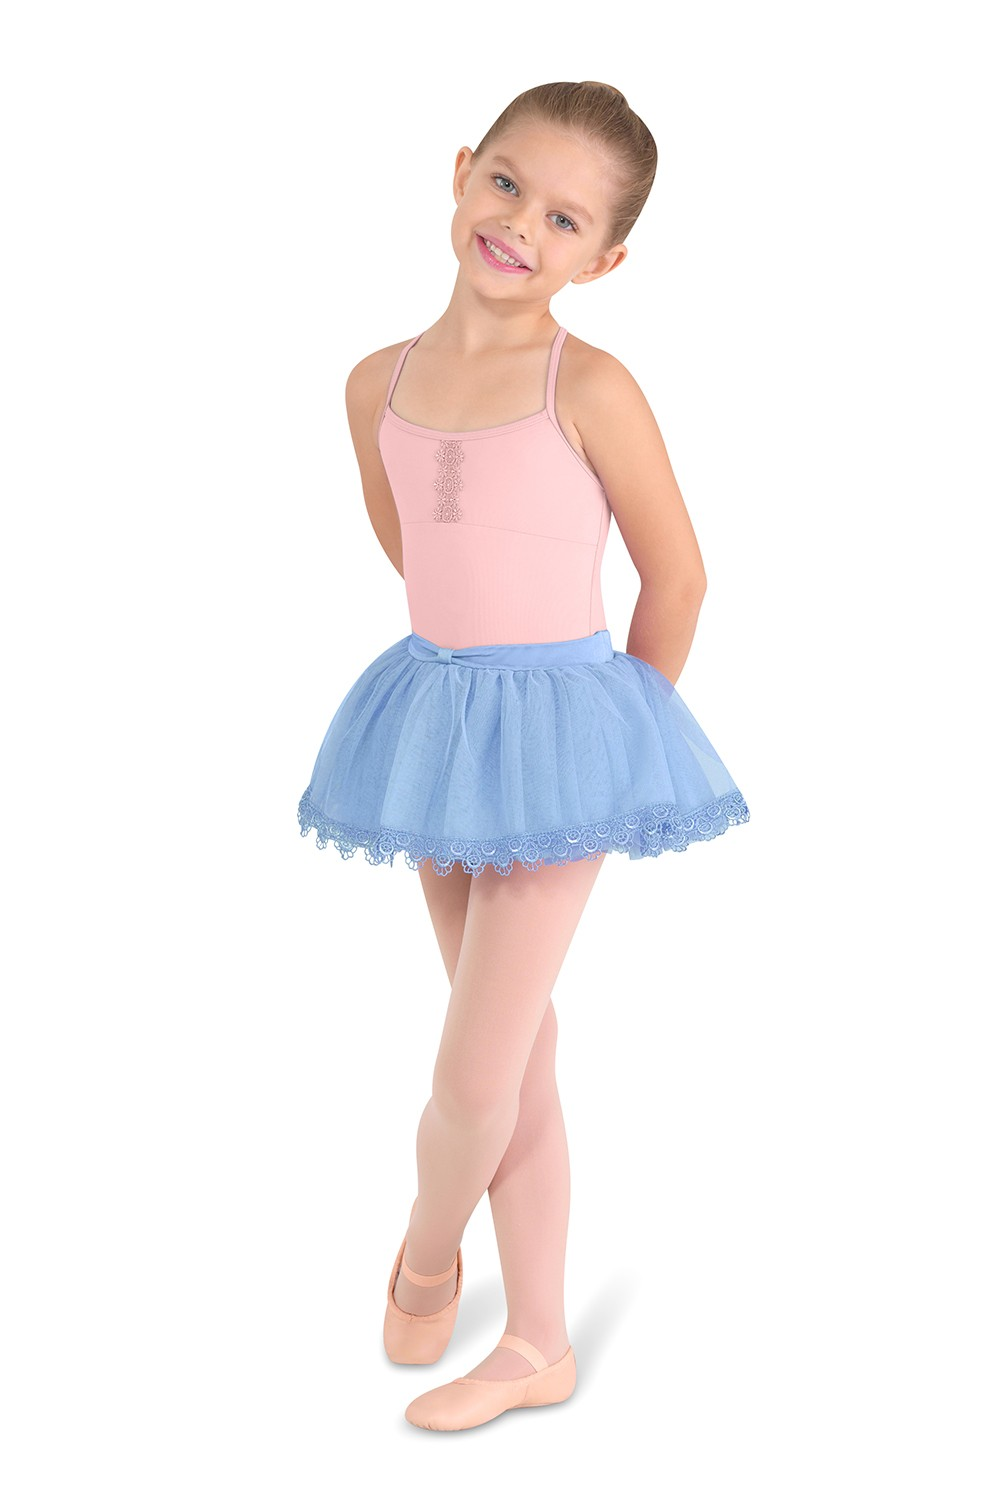 X Back Camisole Children's Dance Leotards